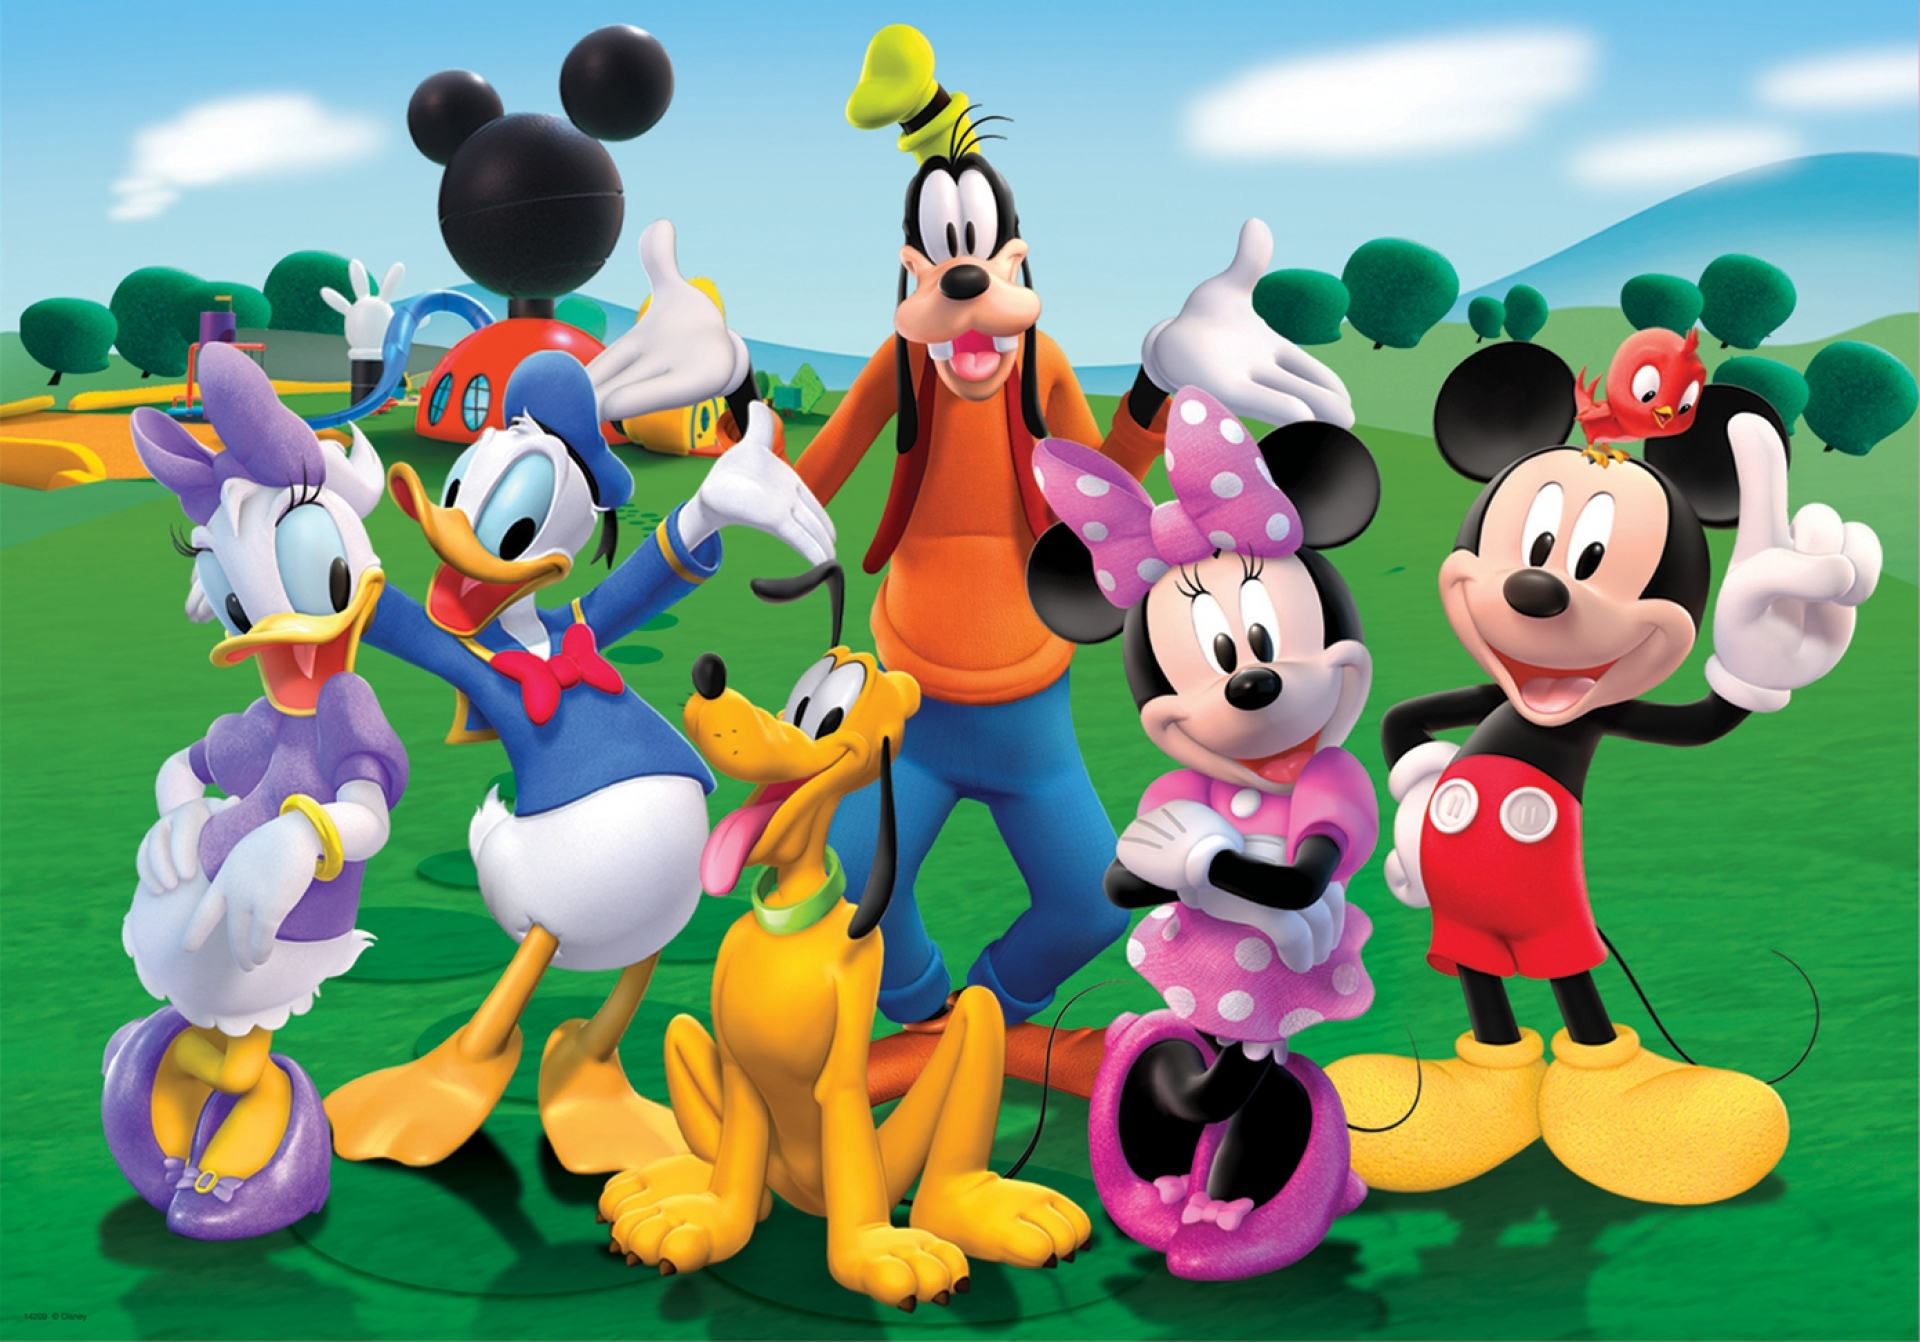 mickey mouse donald duck daisy walt disney free hd wall paper